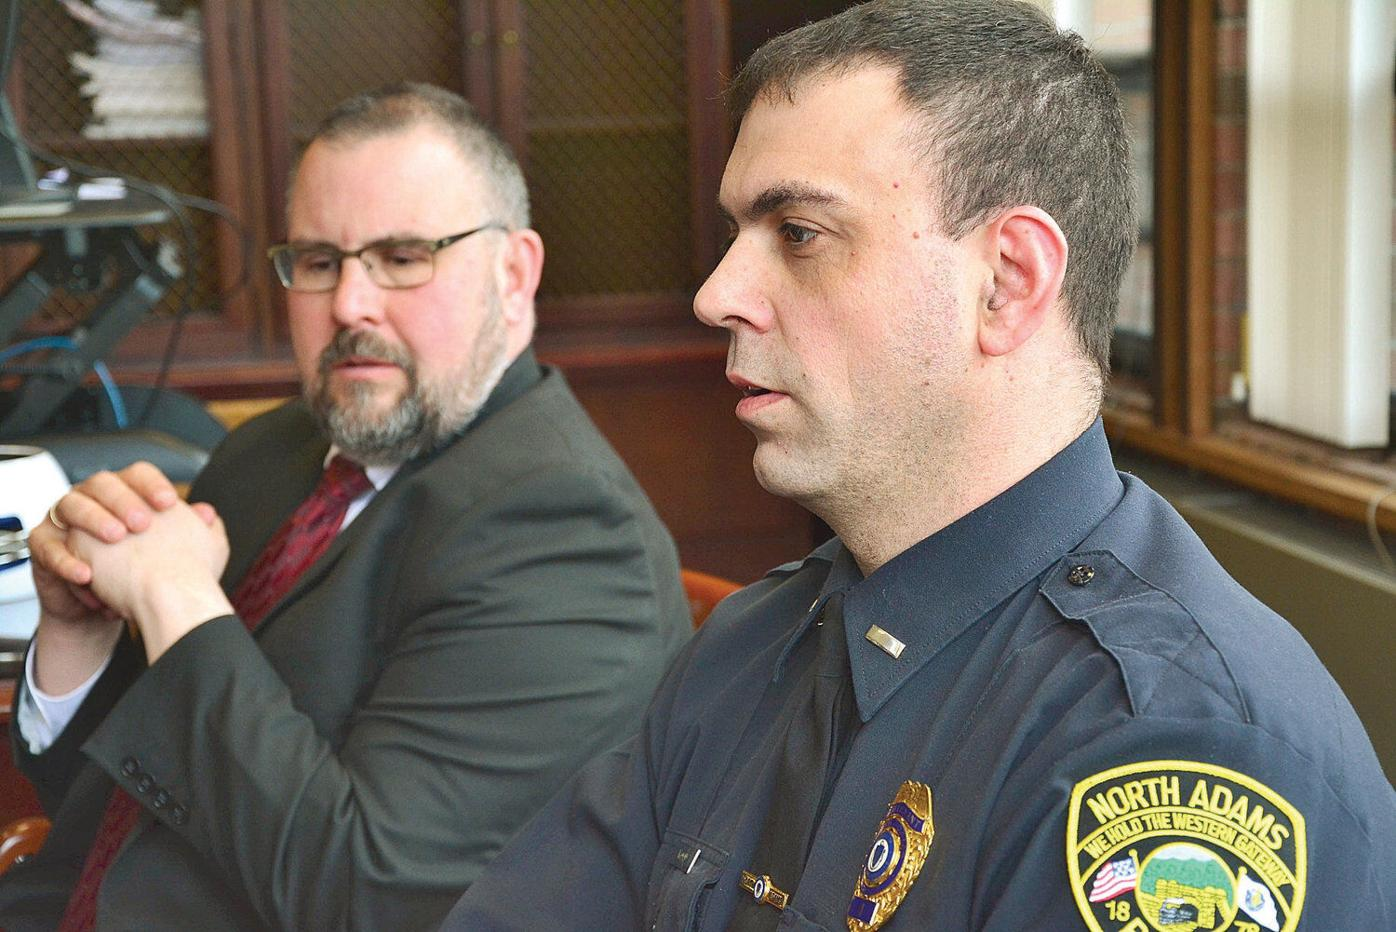 North Adams selects Lt. Jason Wood as city's new police chief